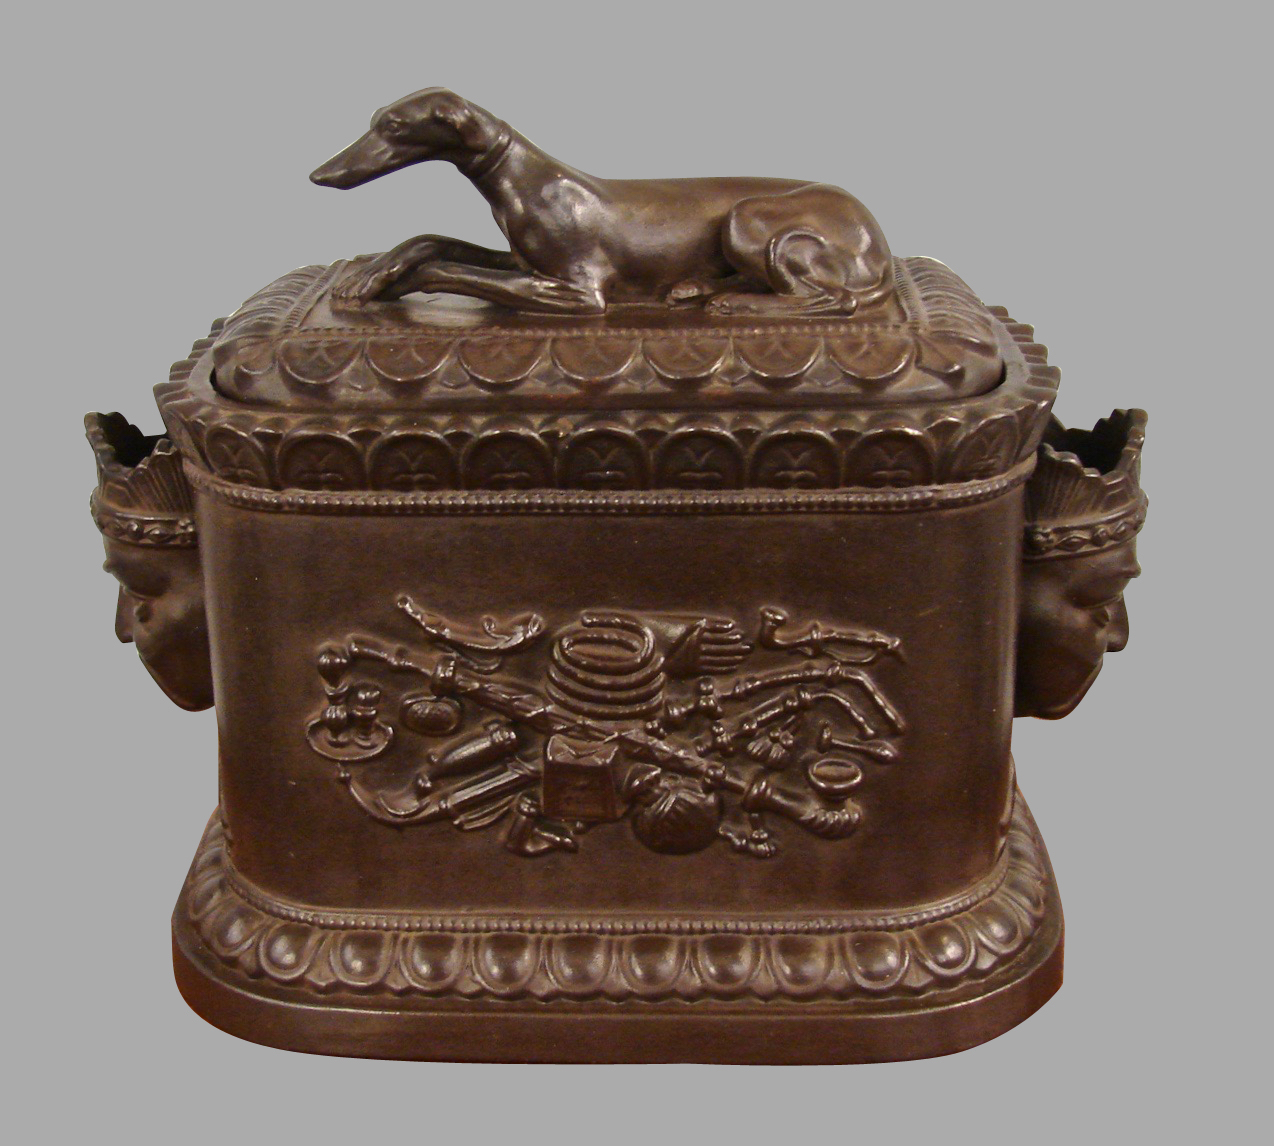 Regency Opium Humidor with Whippet Finial by Robinson and Wood